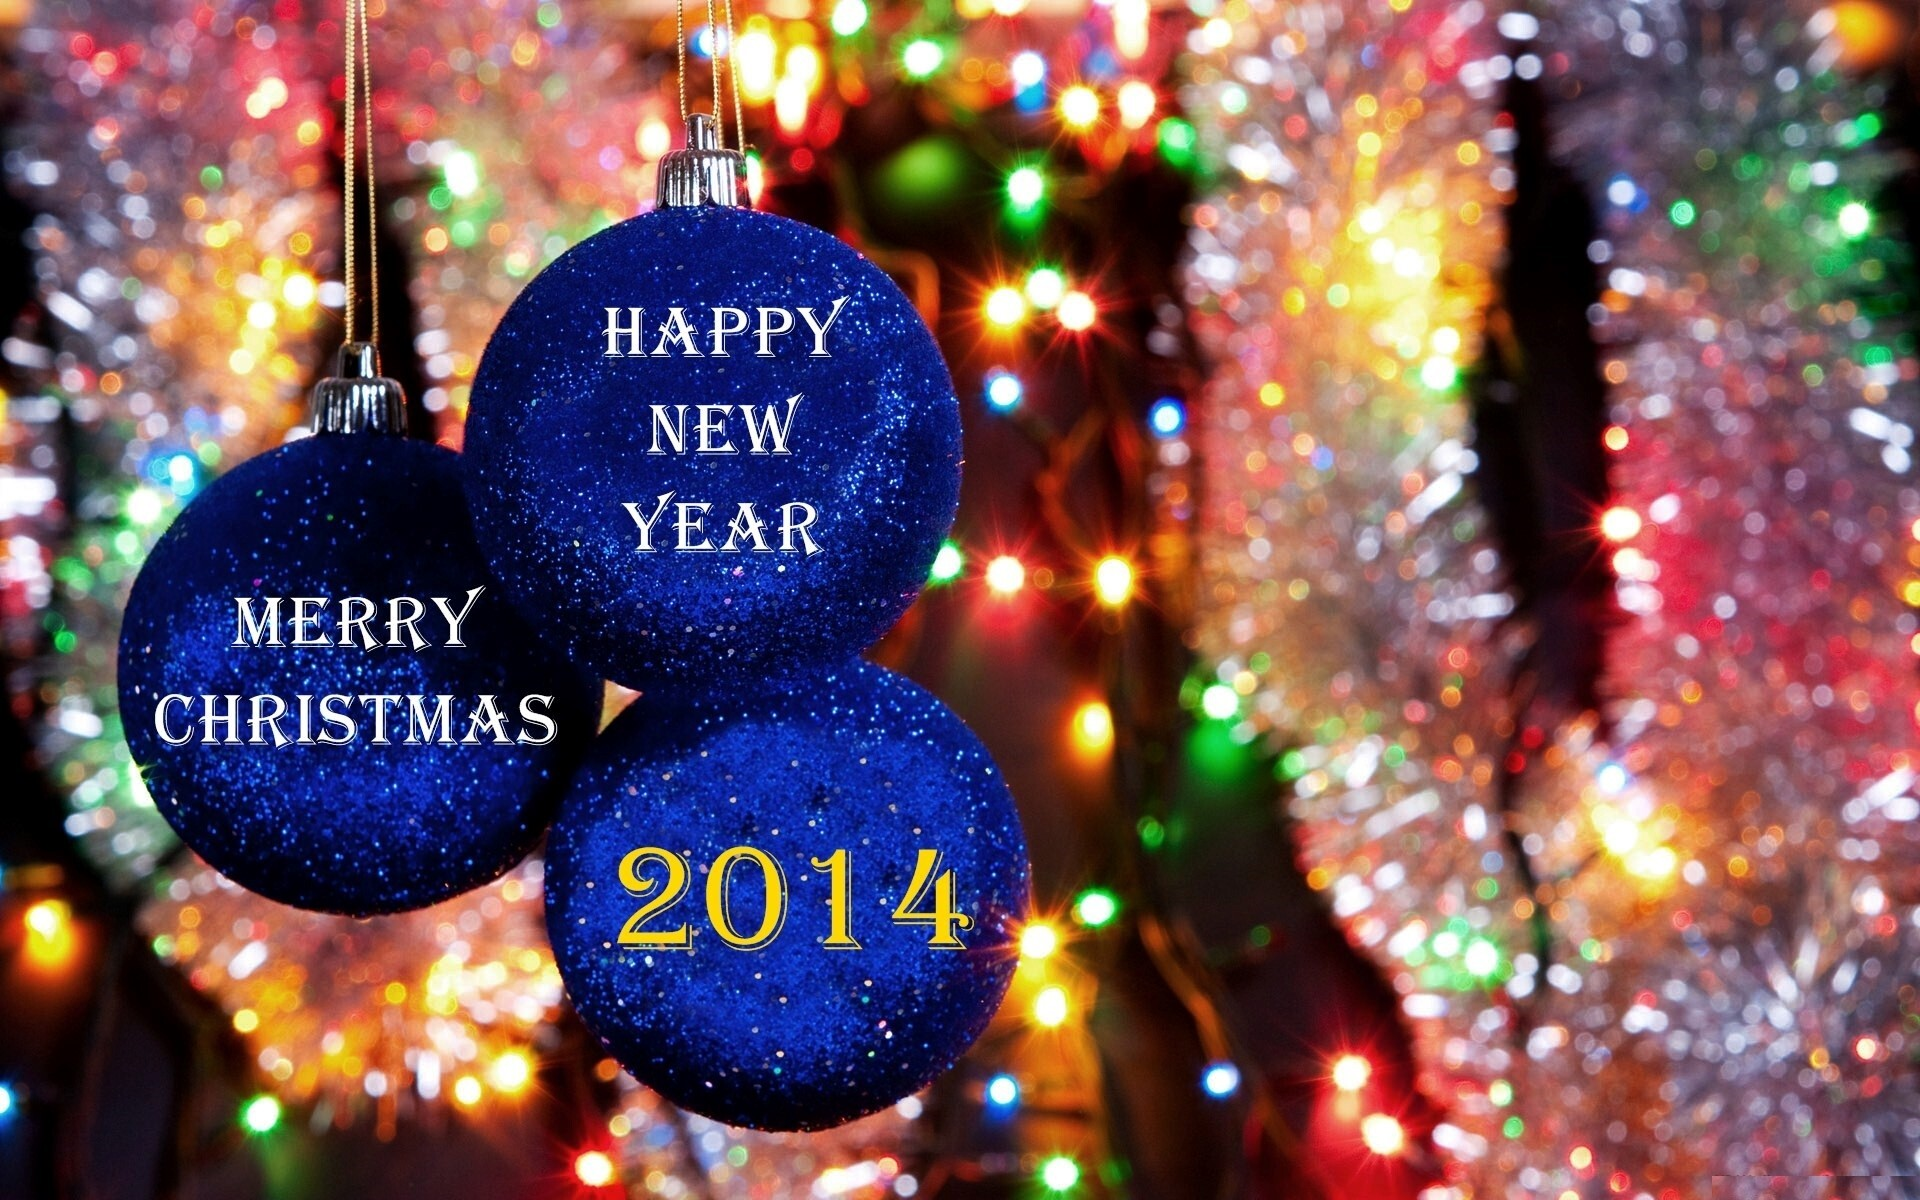 Happy New Year Photos Free Download | HD Wallpapers